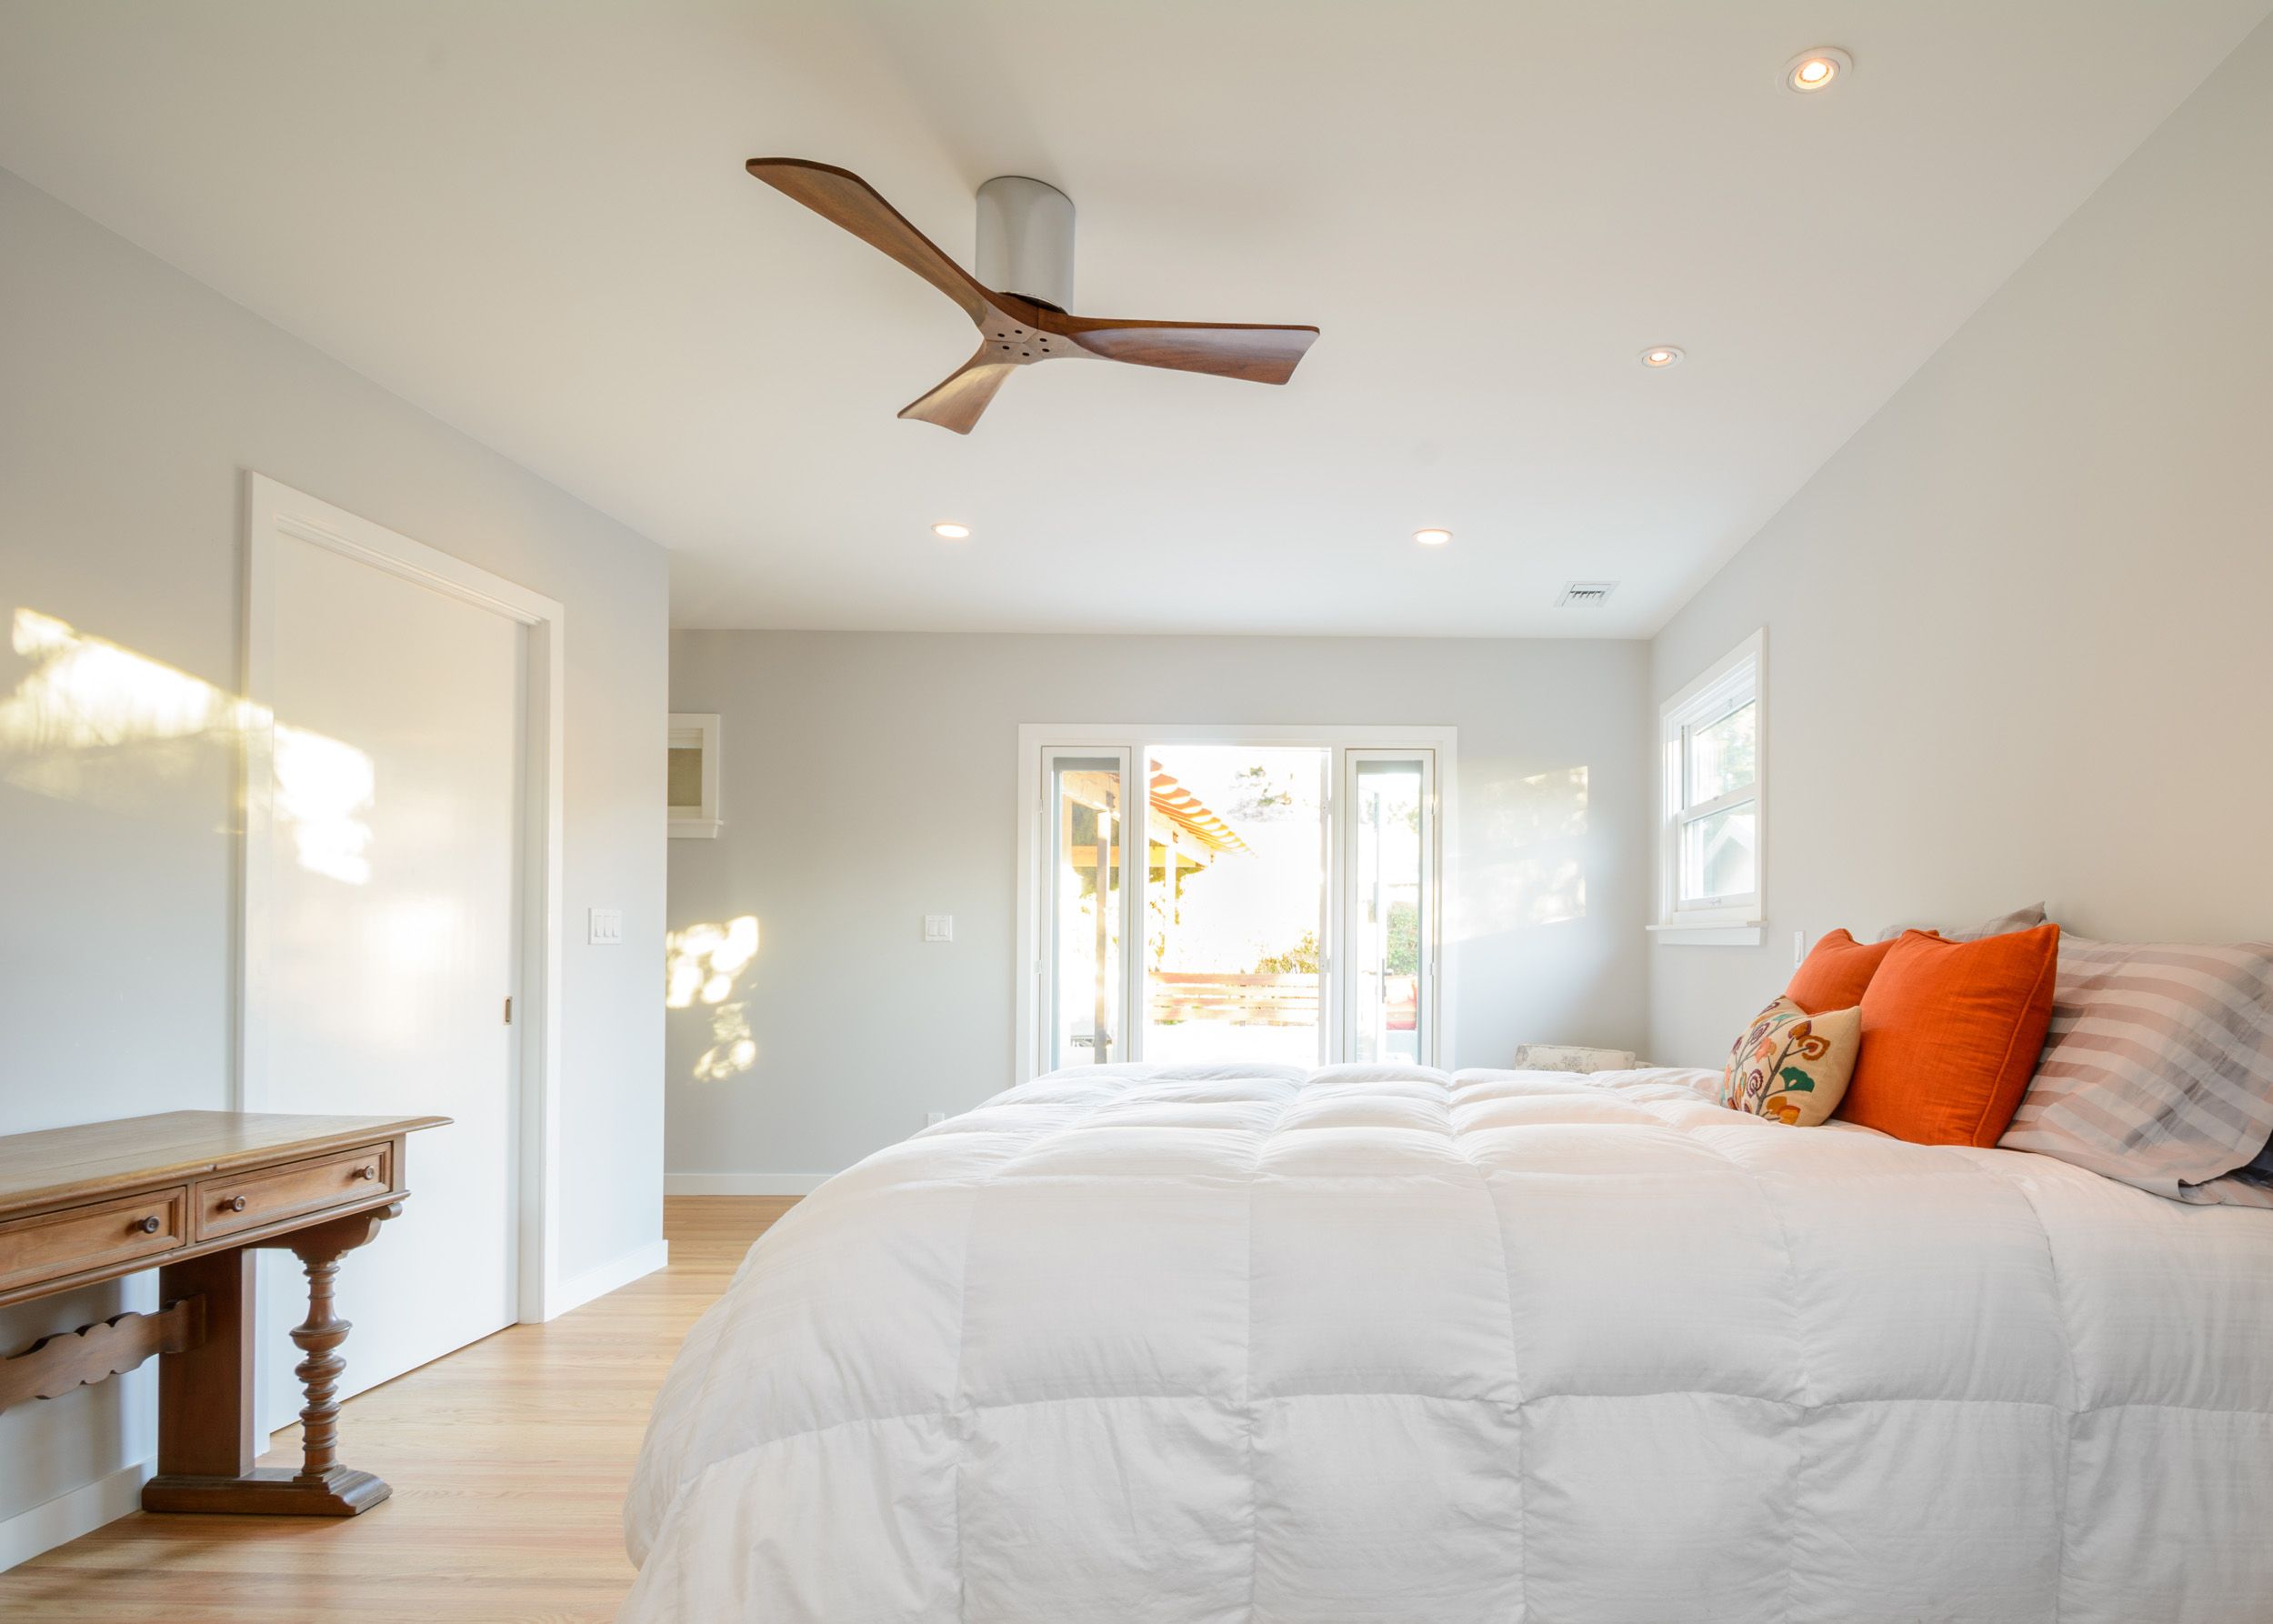 Bright and minimalist master suite addition with recessed lighting, a ceiling fan and a patio door opening onto the outside deck